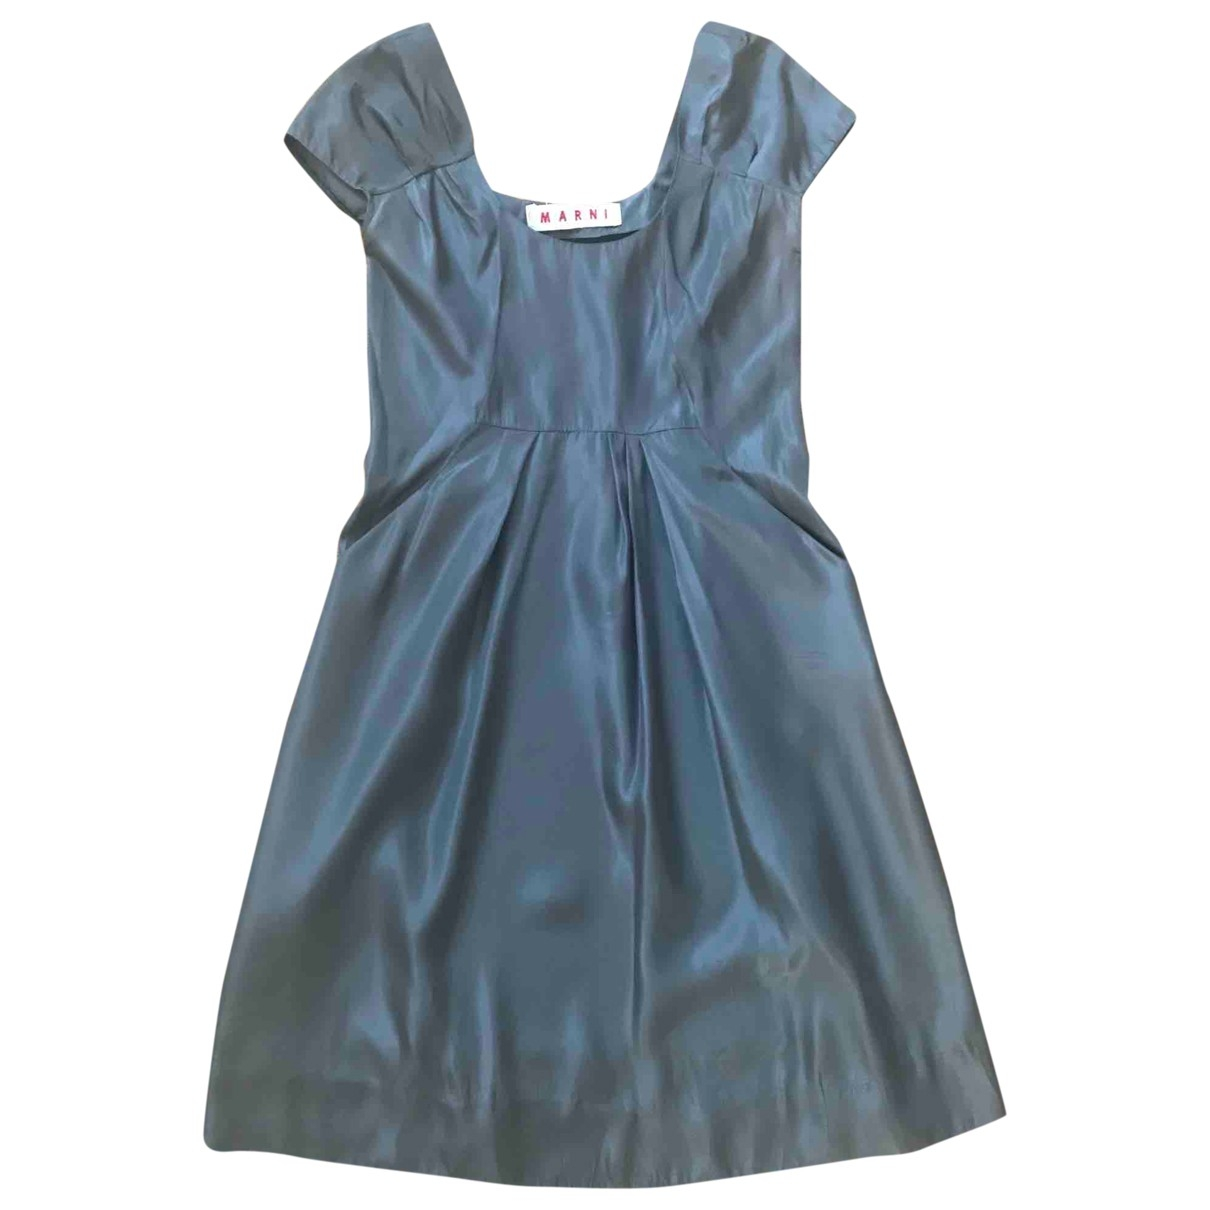 Marni \N Grey dress for Women 38 IT